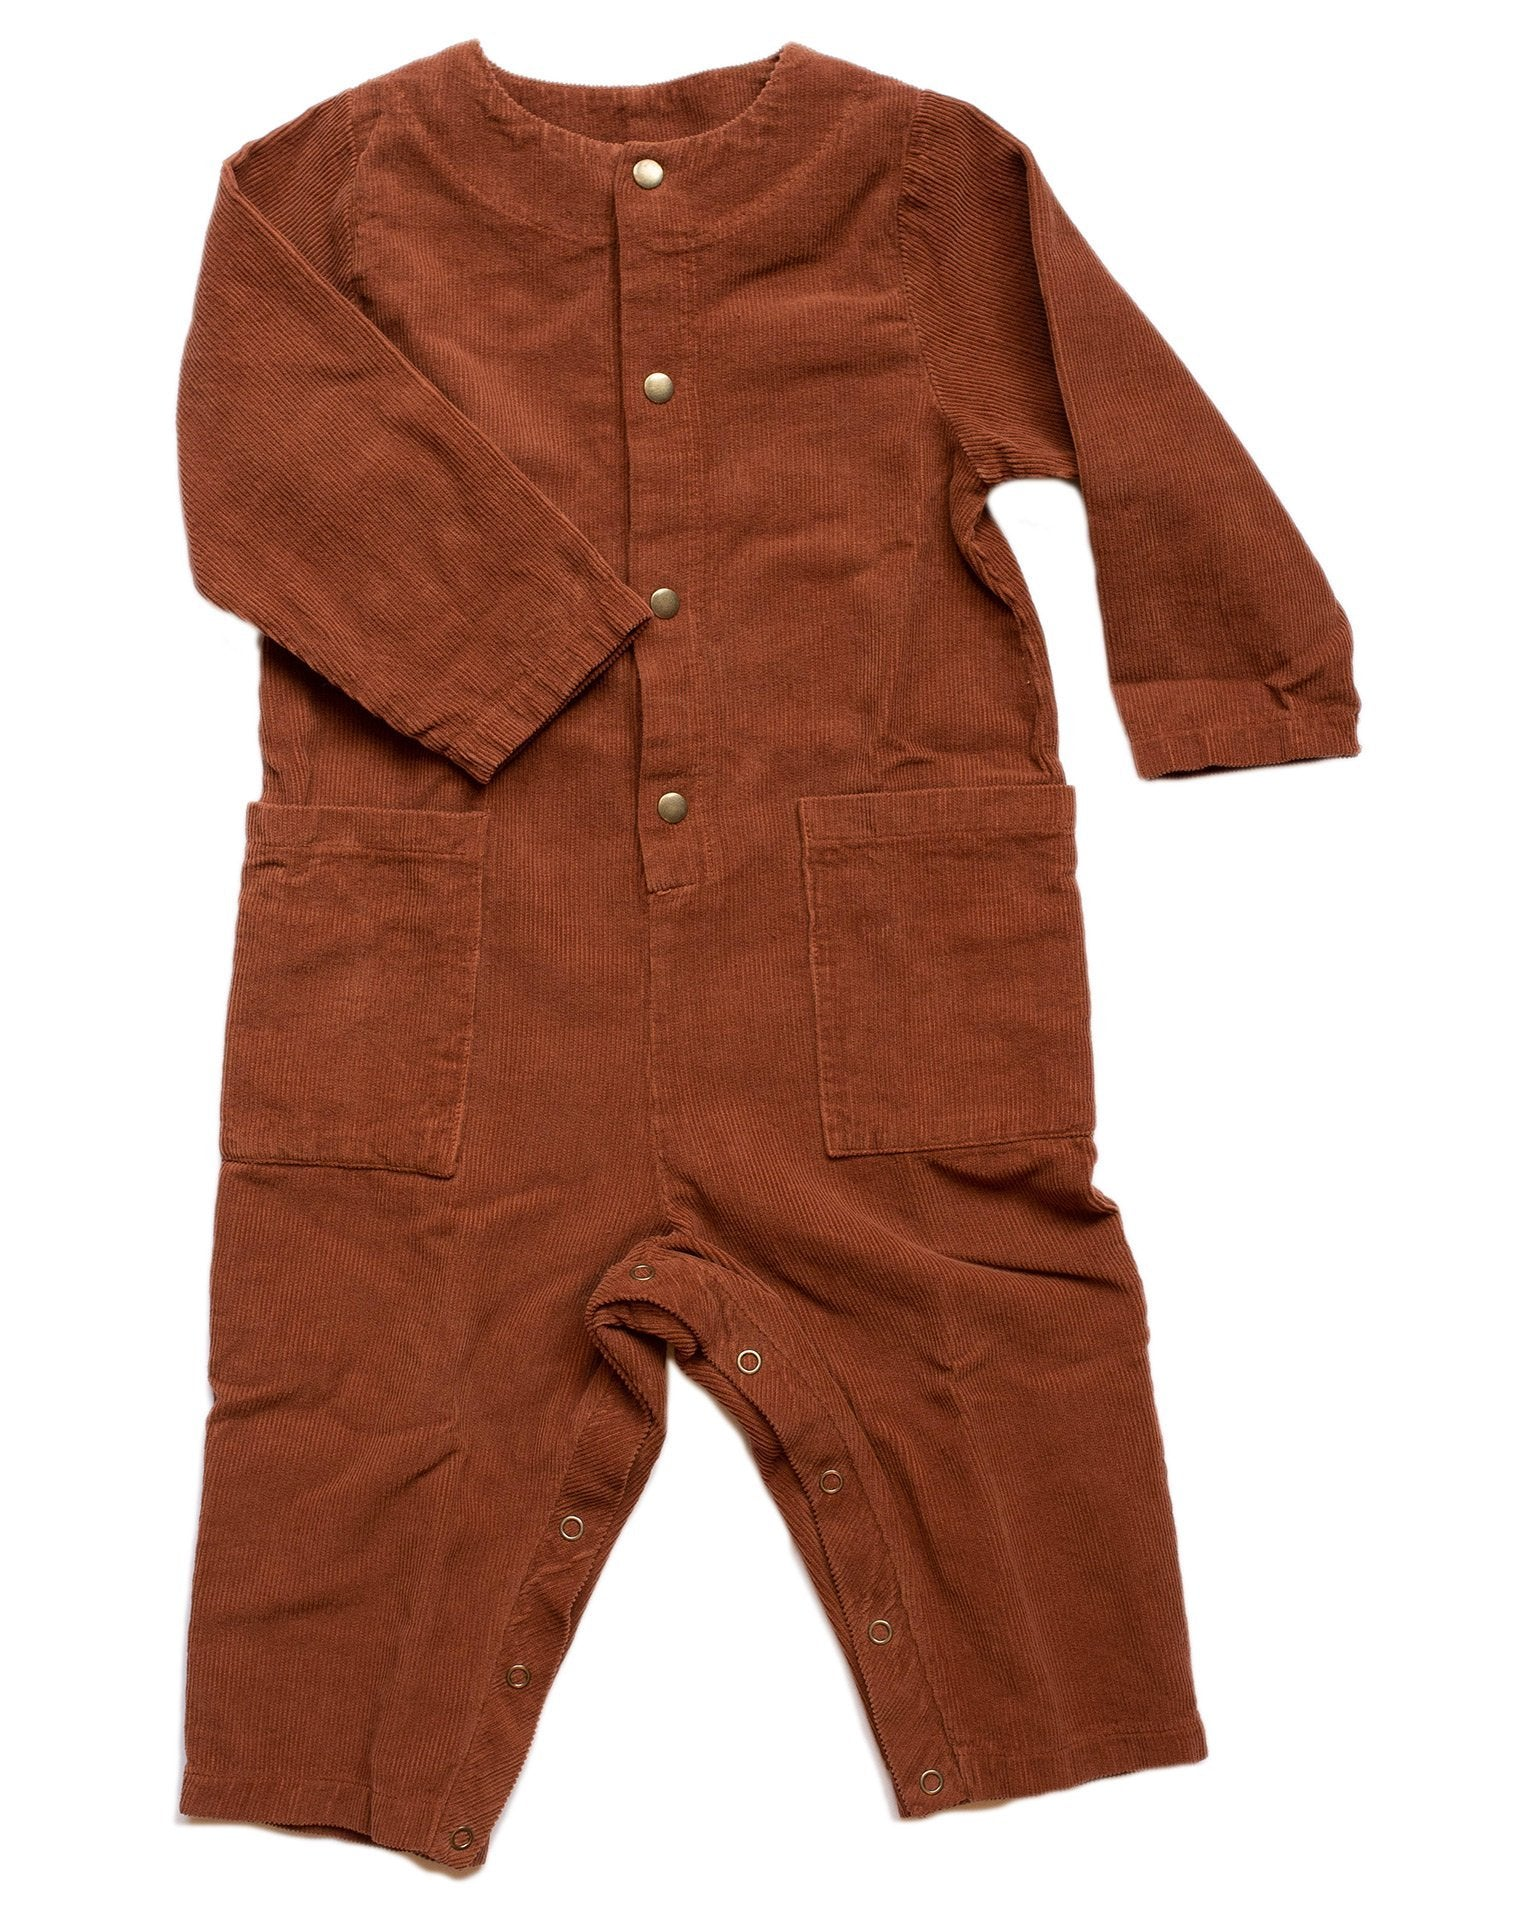 Little fin + vince boy voyage romper in hazelnut